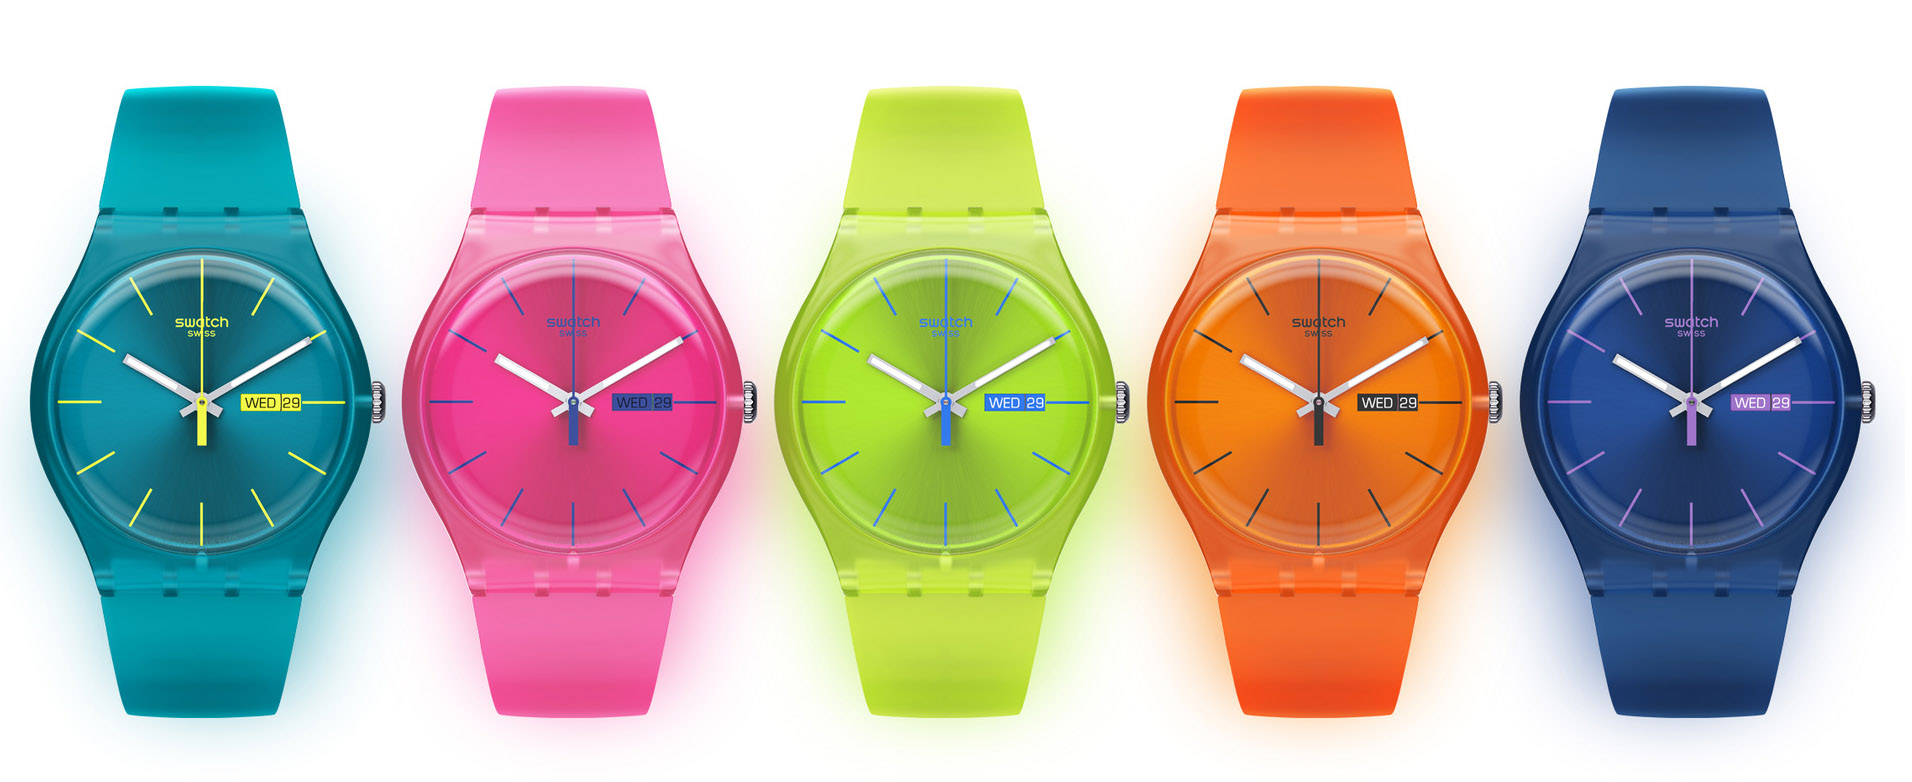 The Swatch Group